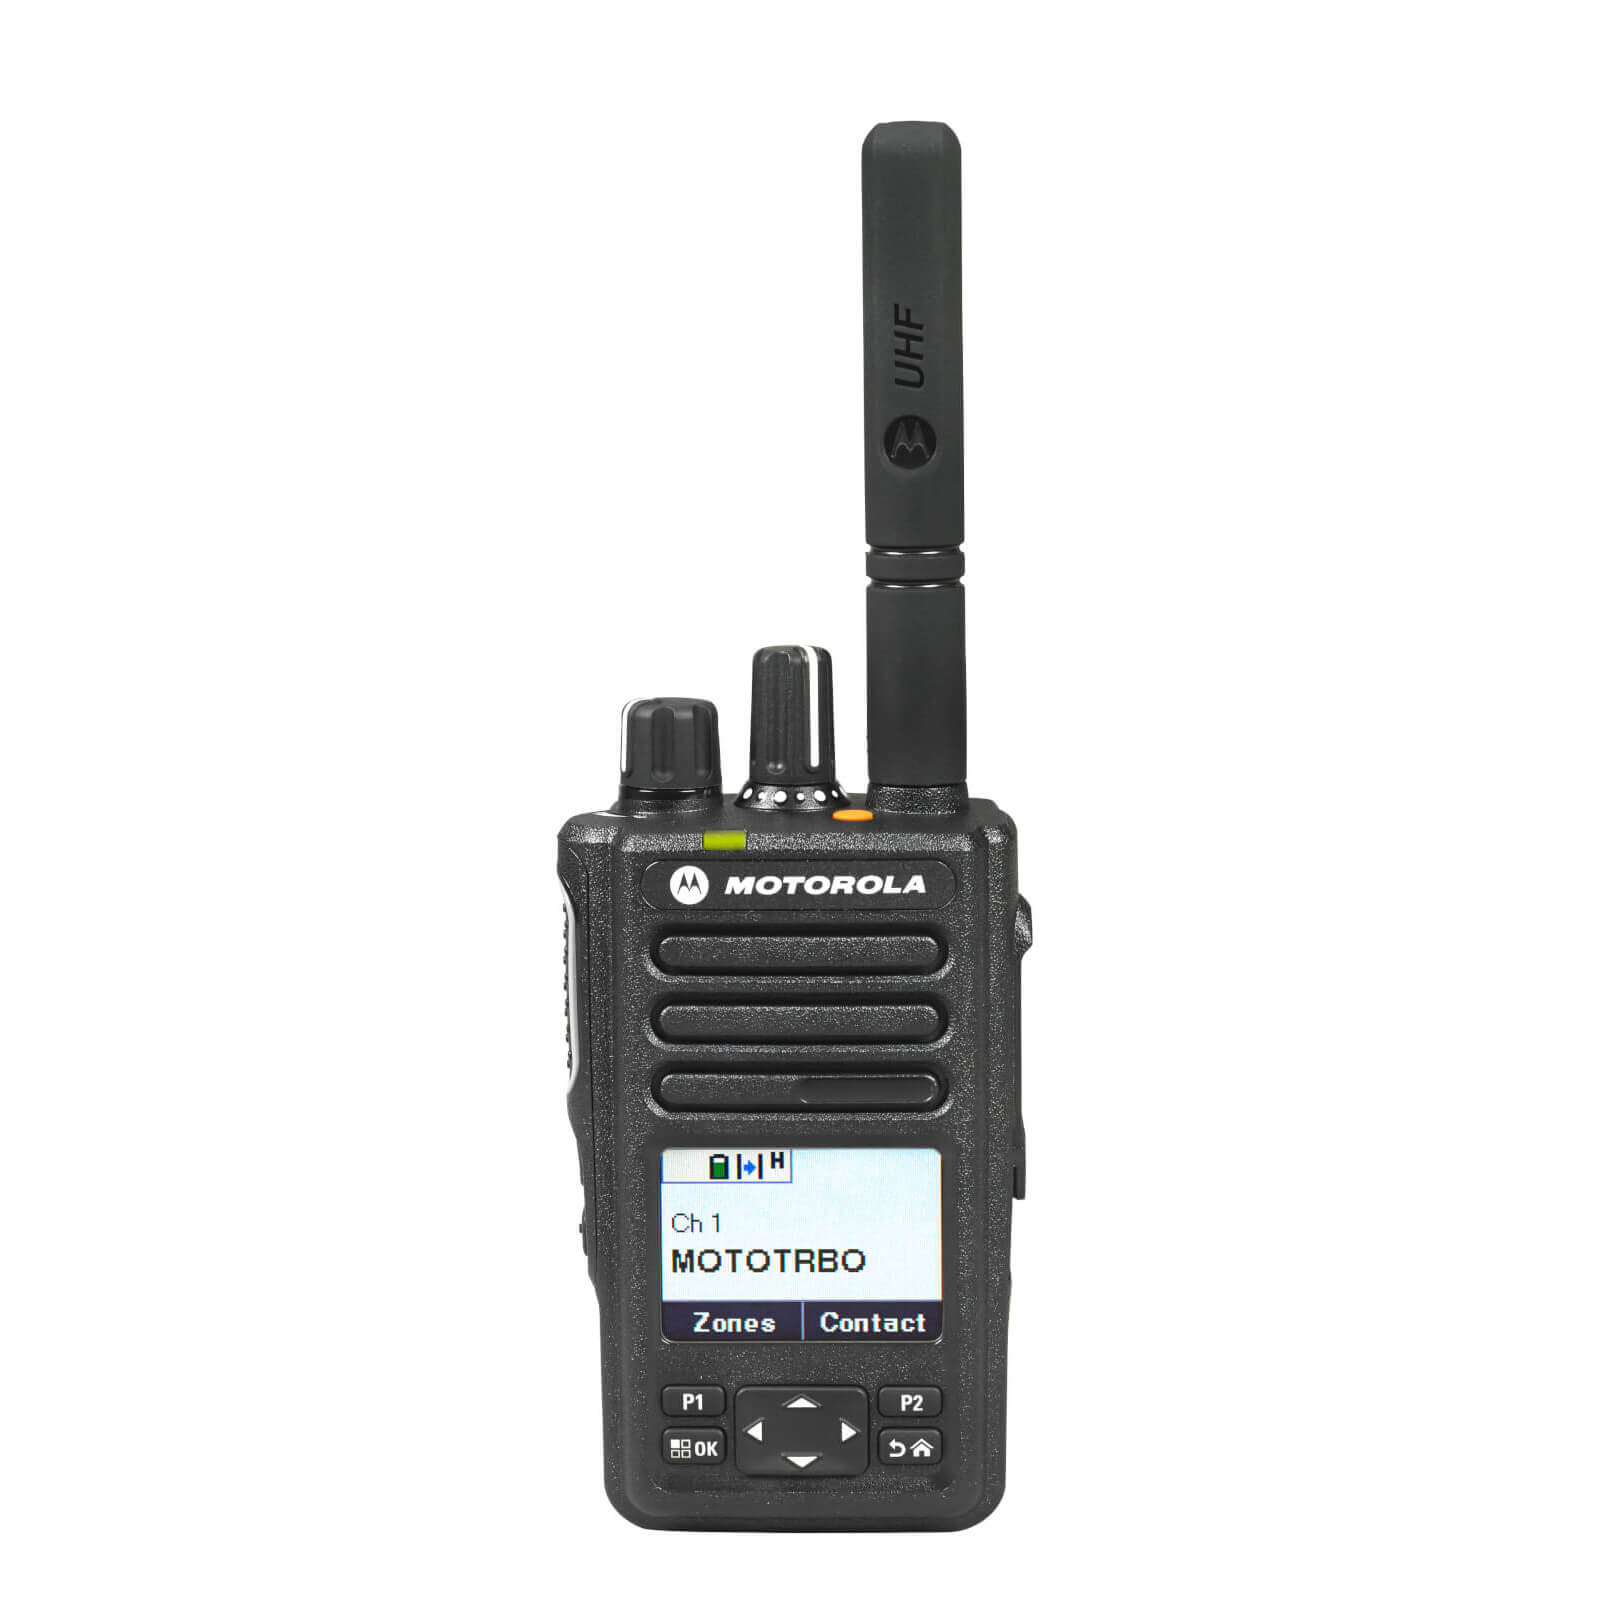 Motorola DP3661e Portable VHF 136-174 MHz 5w LKP IP68 Inc GPS, Bluetooth, WiFi, Antenna, PMNN4440AR STD 1700T Battery & Belt Clip